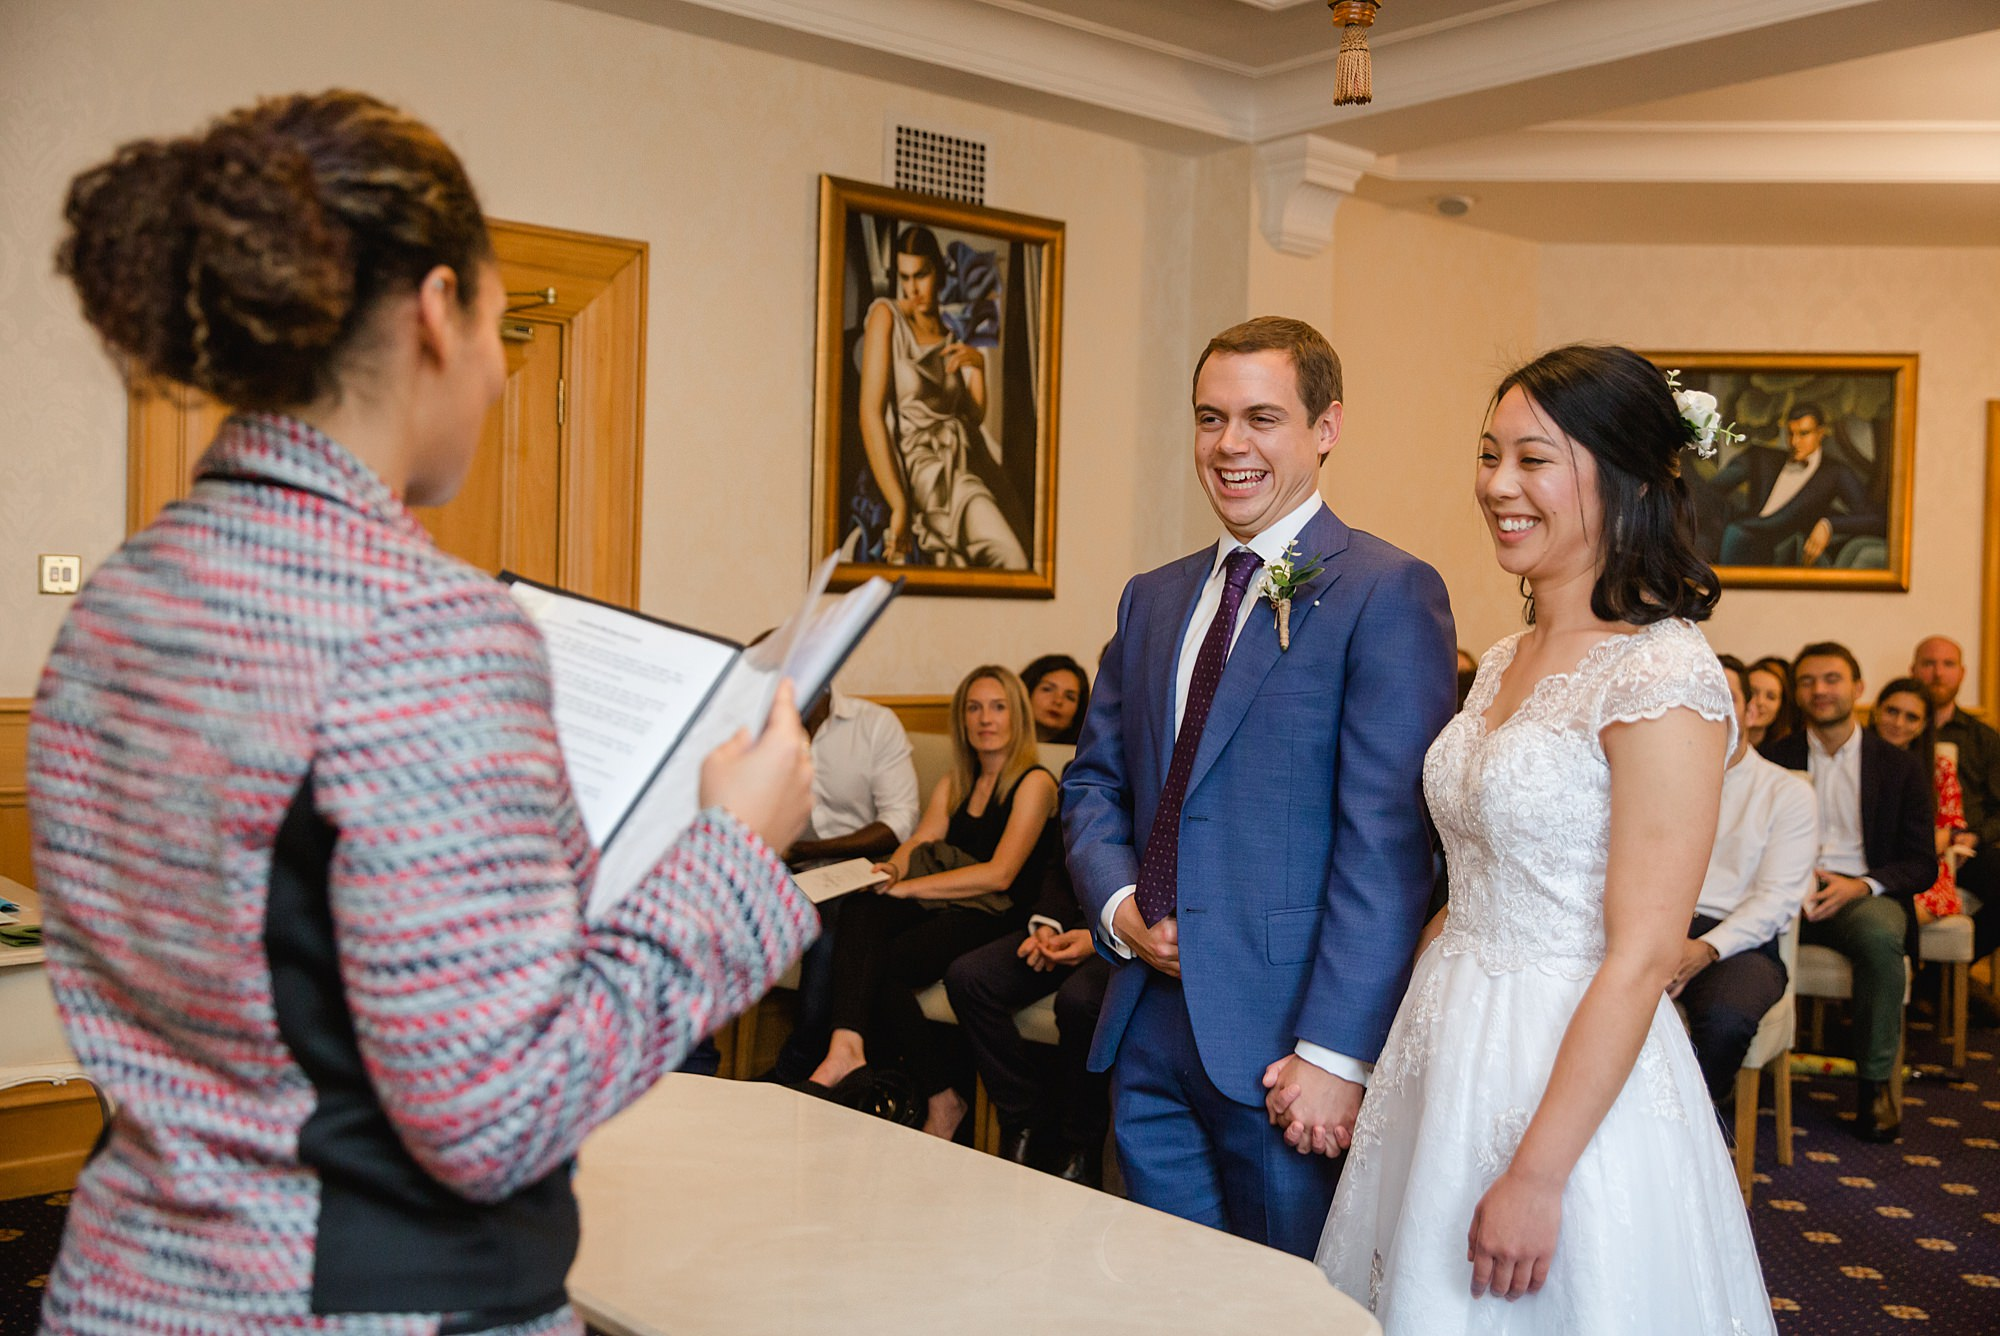 Wandsworth pub wedding ceremony at wandsworth town hall